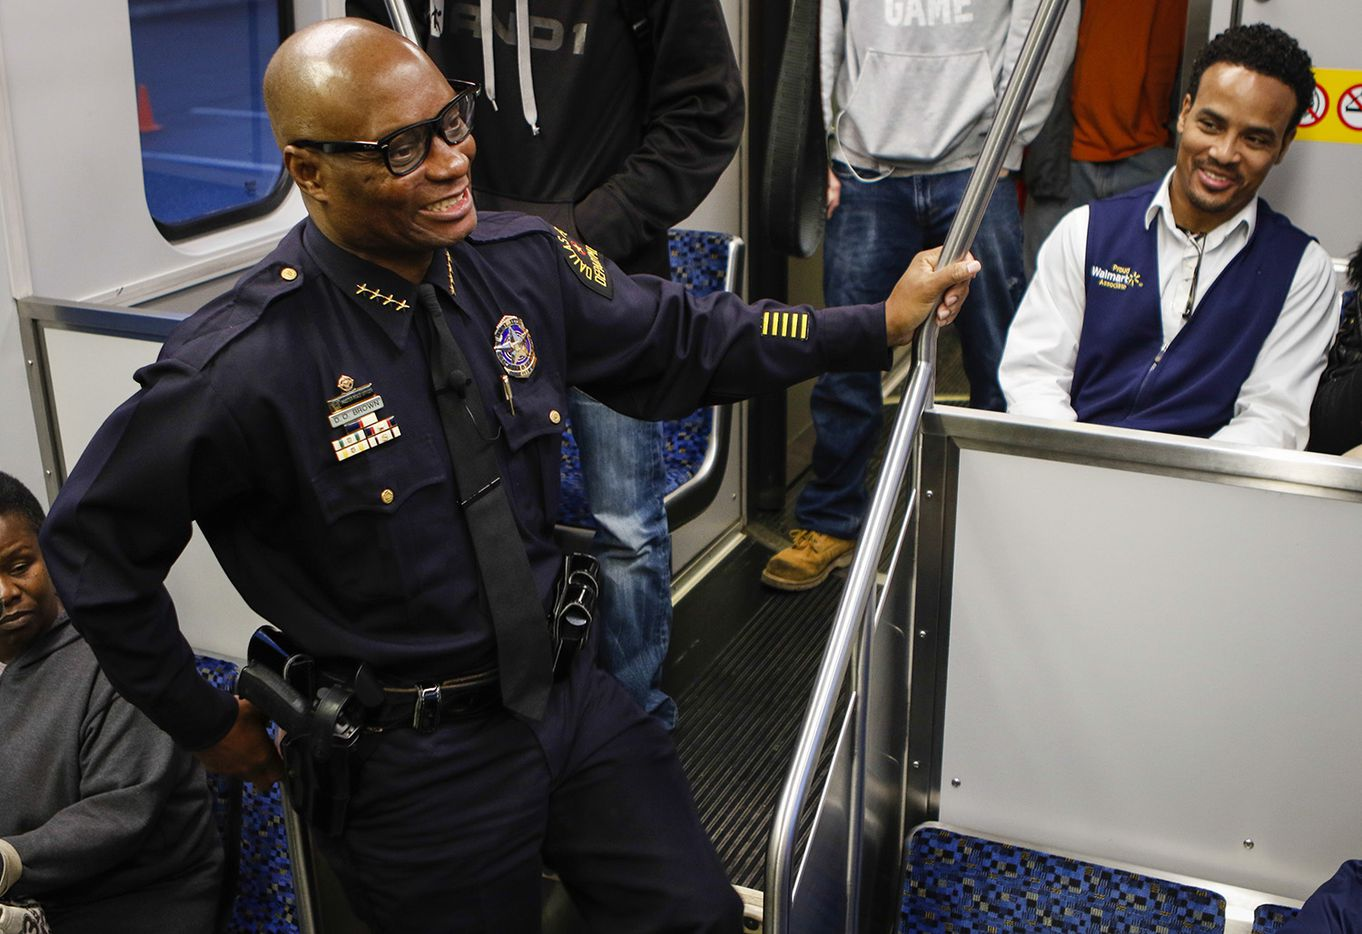 Dallas Police Chief David Brown chats with passengers on a DART train in Dallas as part of a community engagement event on Friday morning, March 20, 2015.